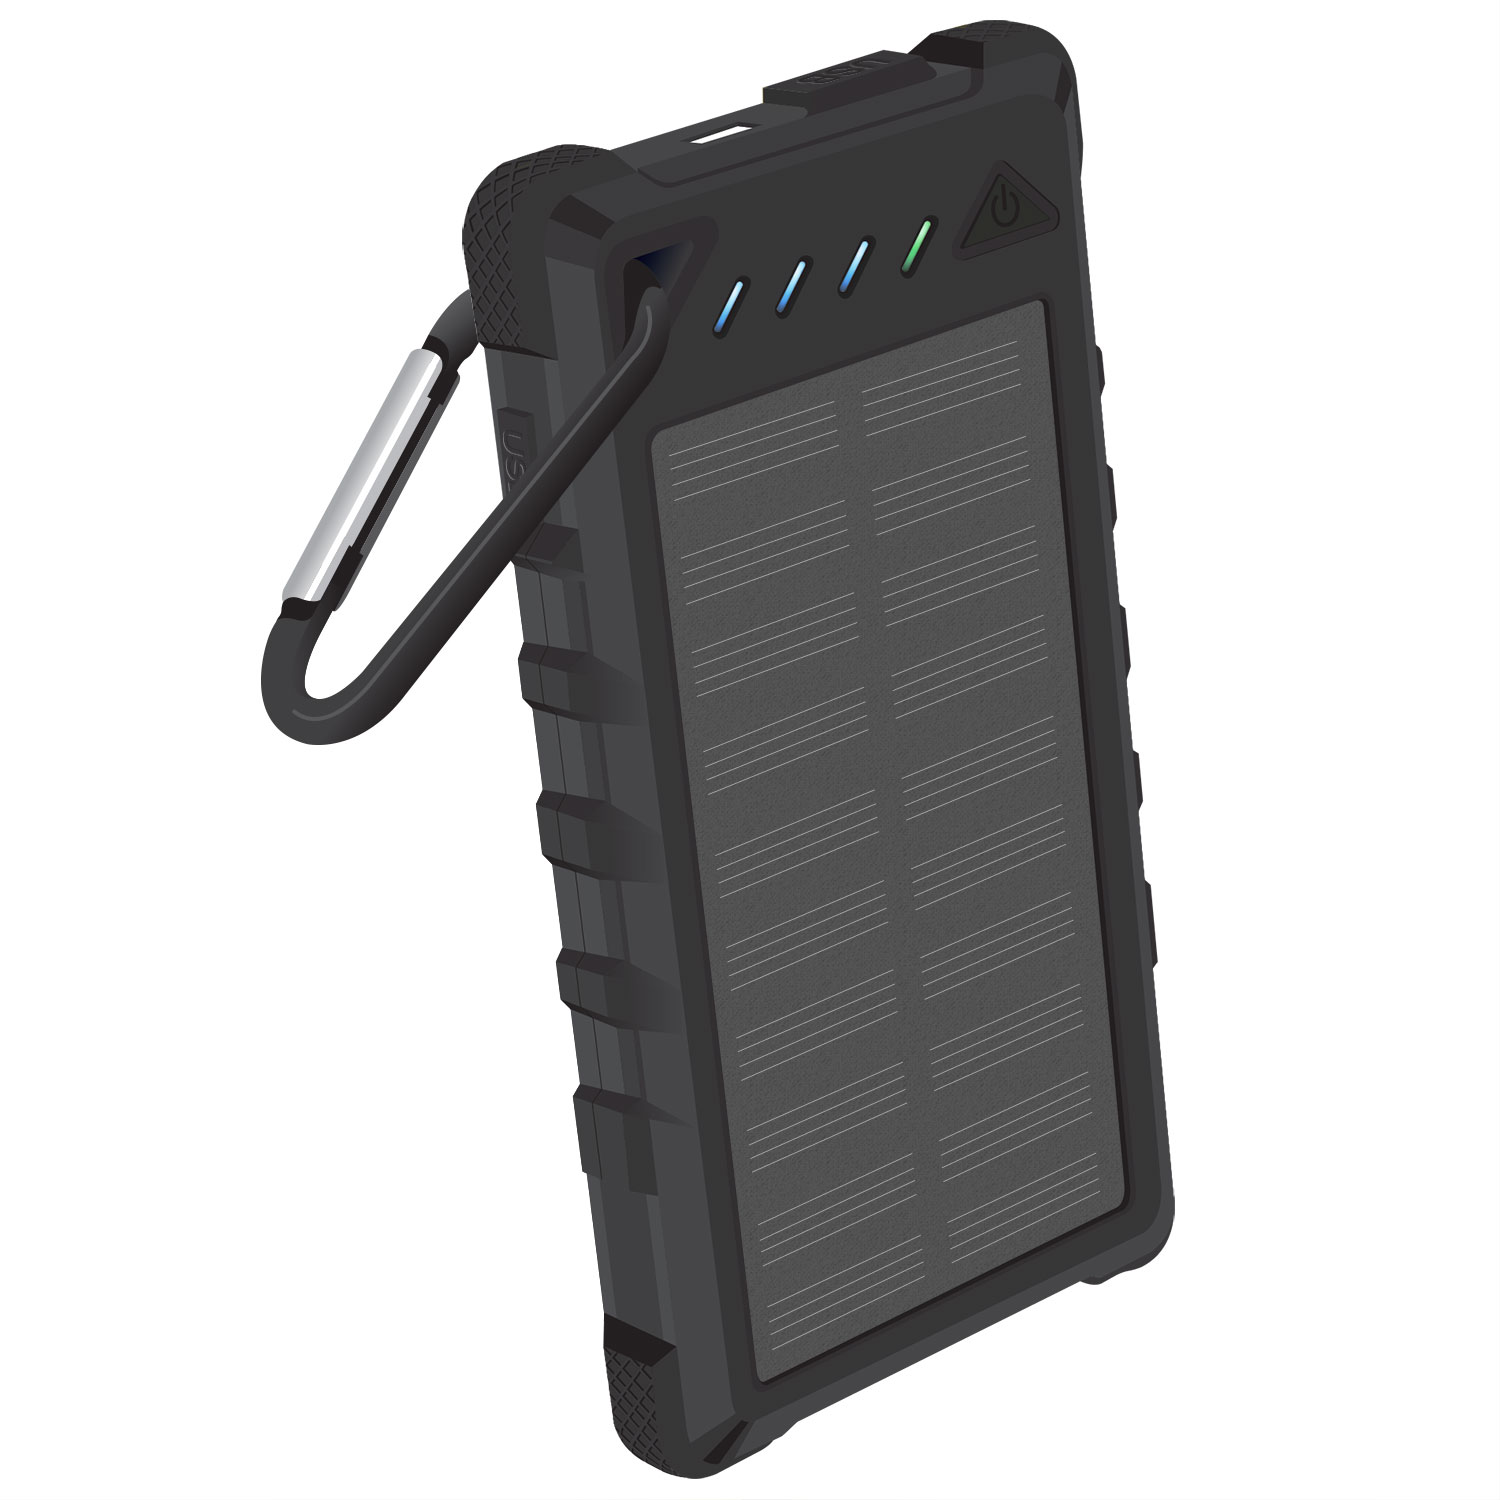 LG Saber Solar Powered Portable PowerBank Black